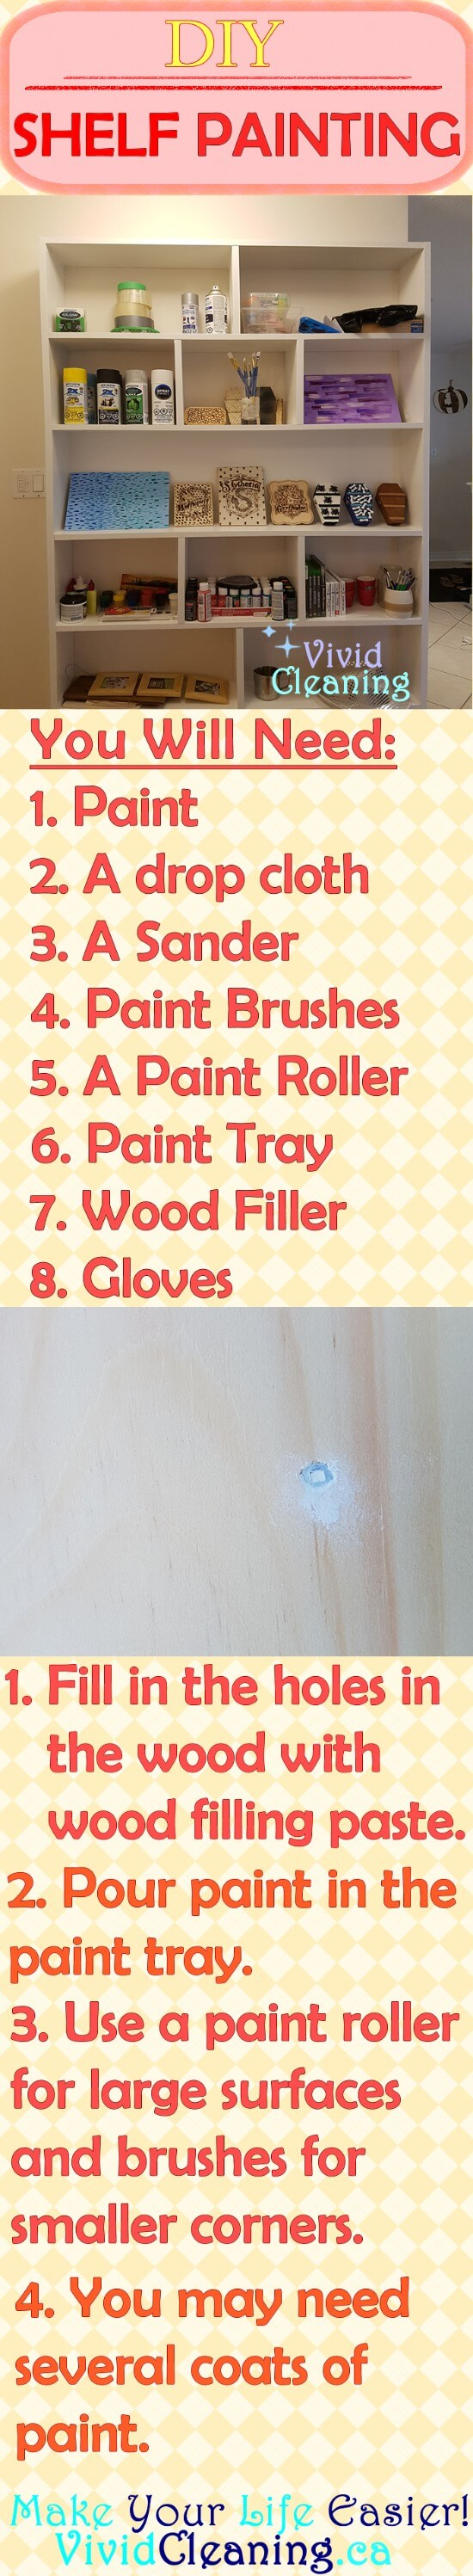 You will need: Paint A drop cloth or newspapers A Sander (optional) Paint Brushes Paint Roller Paint Tray Wood Filler Gloves Fill in the holes in the wood with wood filling paste. Pour paint in the paint tray. Use a paint roller for large surfaces and brushes for smaller corners You may need several coats of paint.